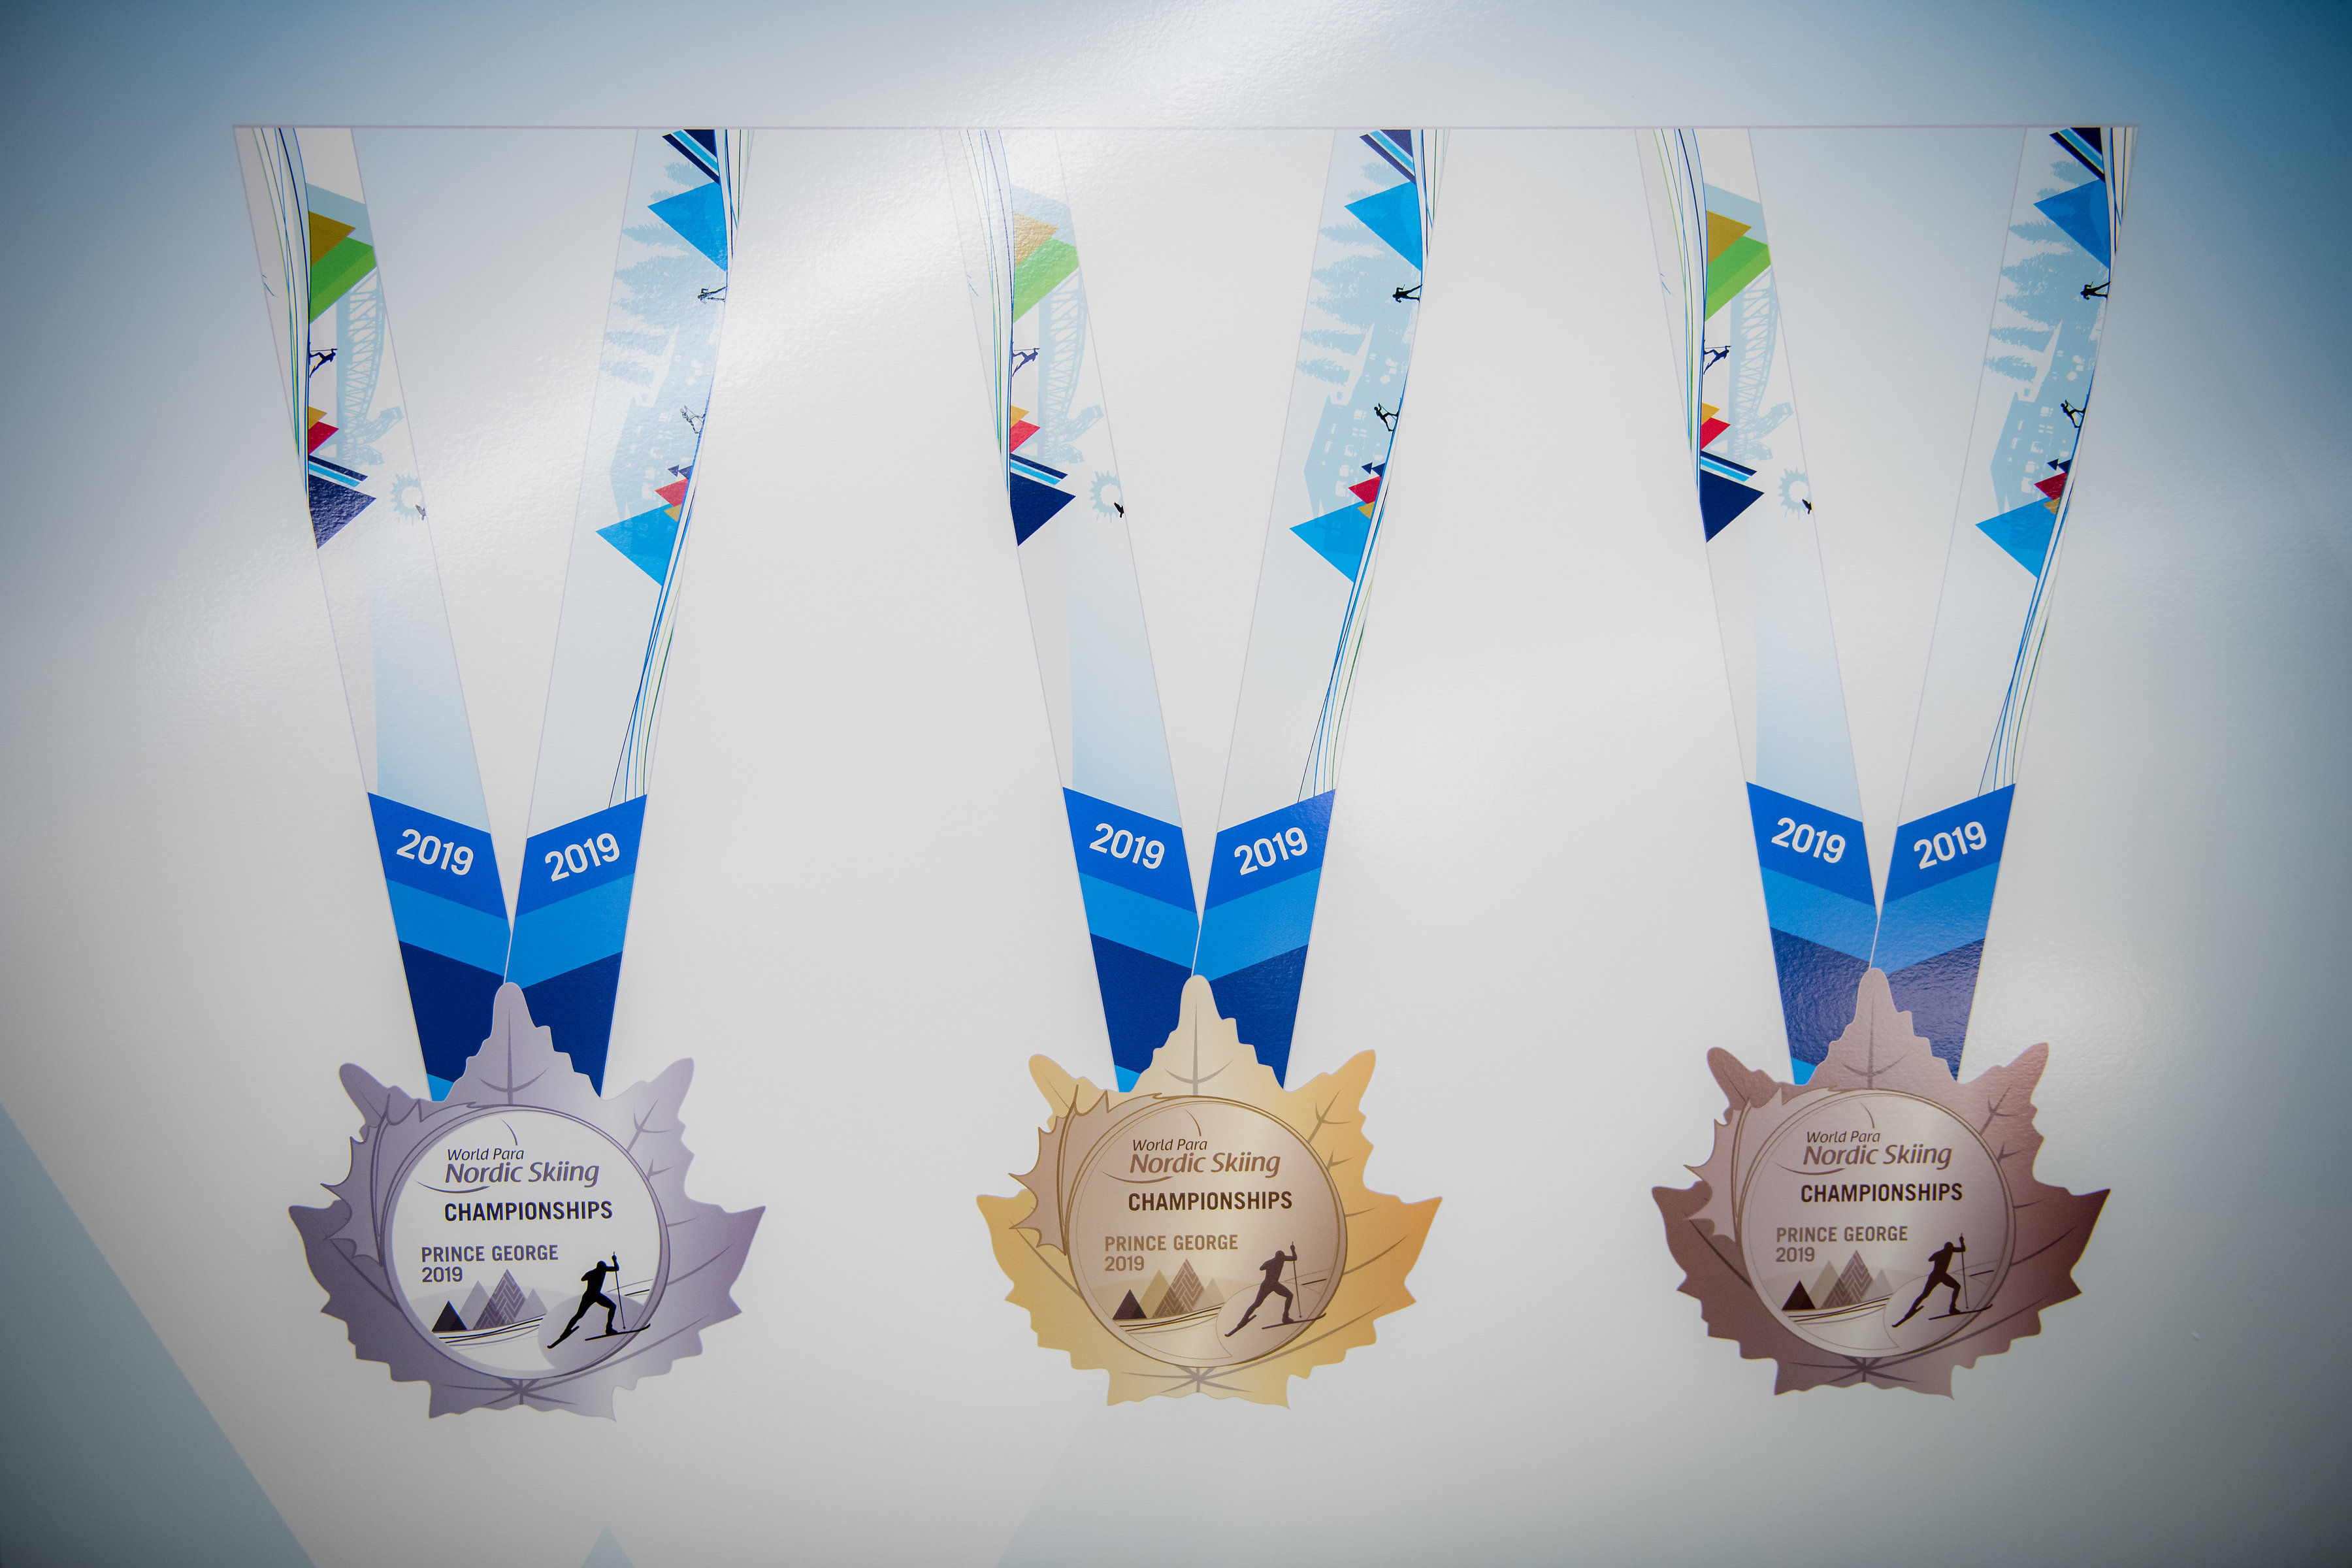 The medals for the 2019 World Para Nordic Championships